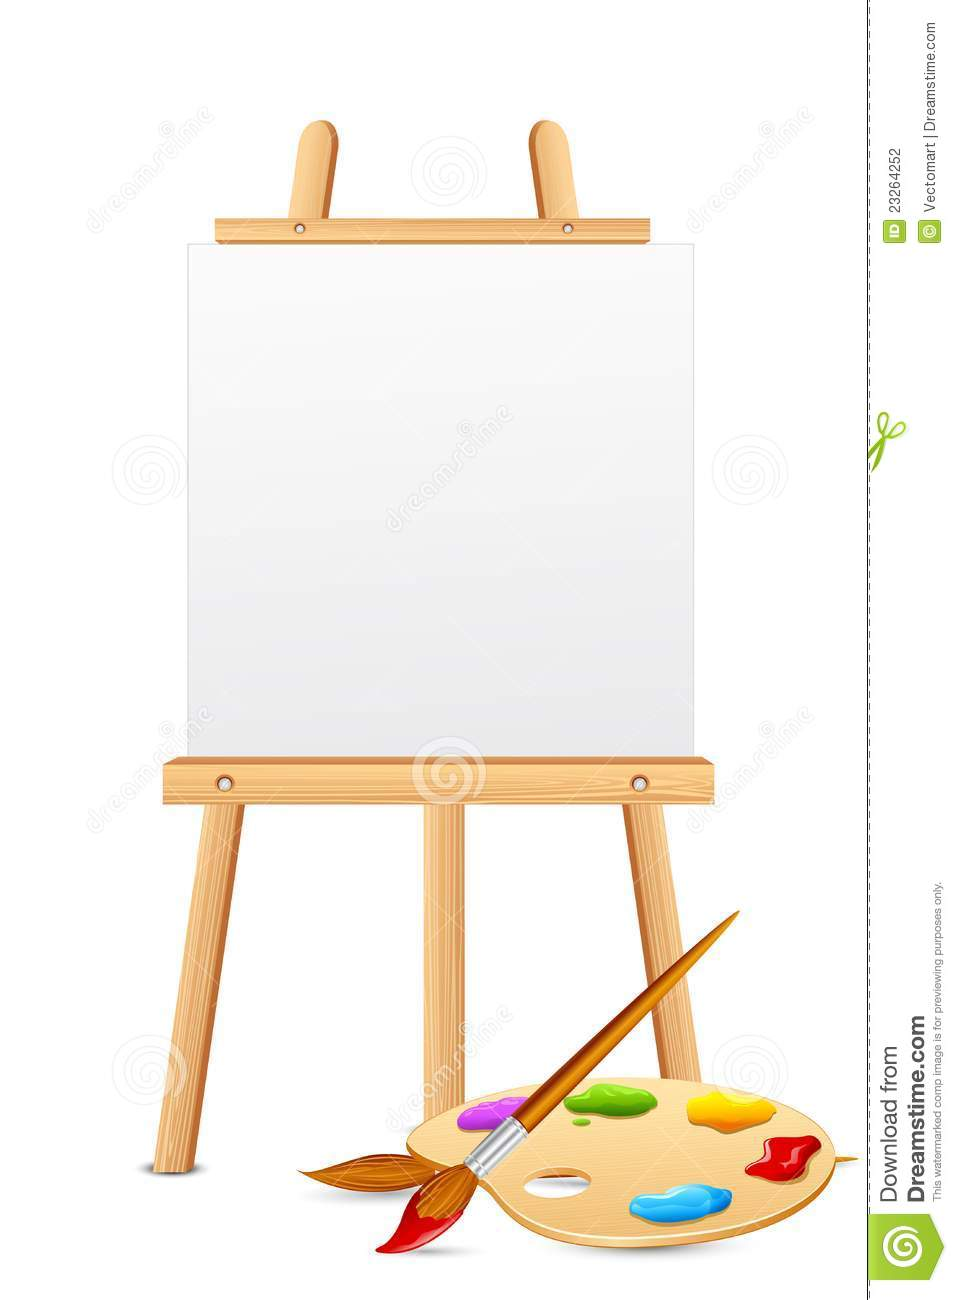 Exhibition Stand Vector Free Download : Easel with color palette stock vector illustration of